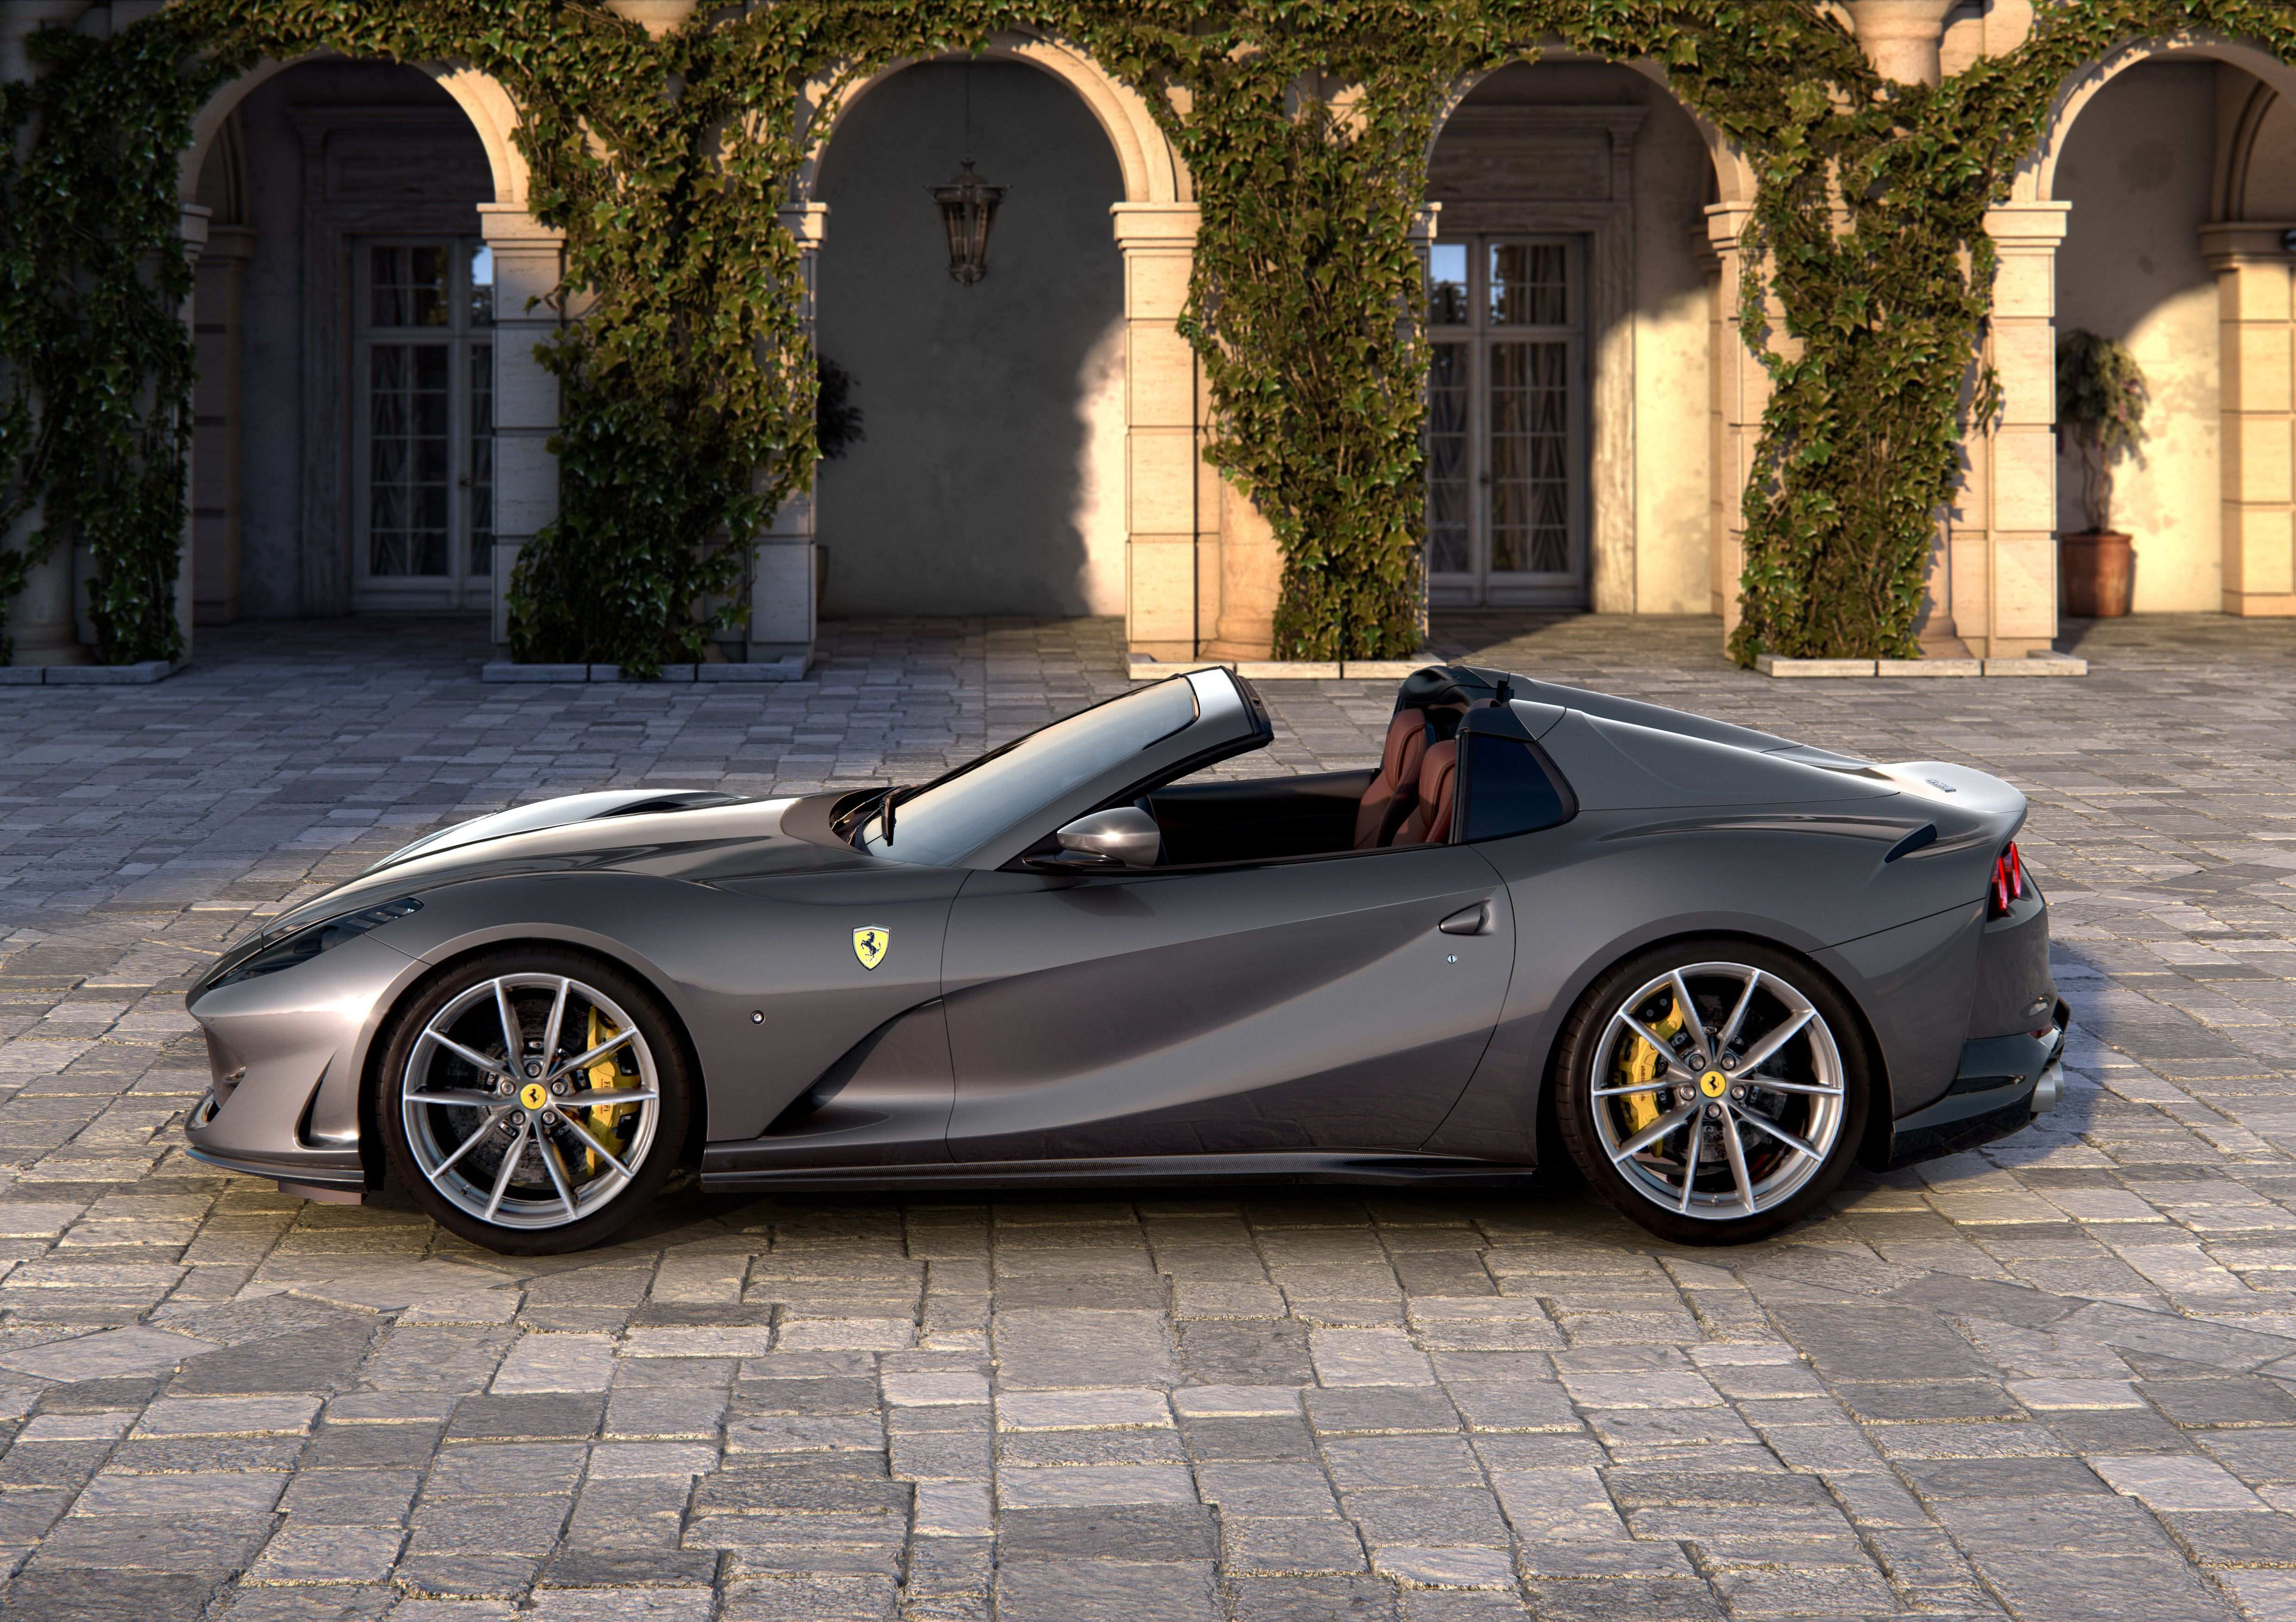 81 All New Ferrari D 2020 Redesign with Ferrari D 2020